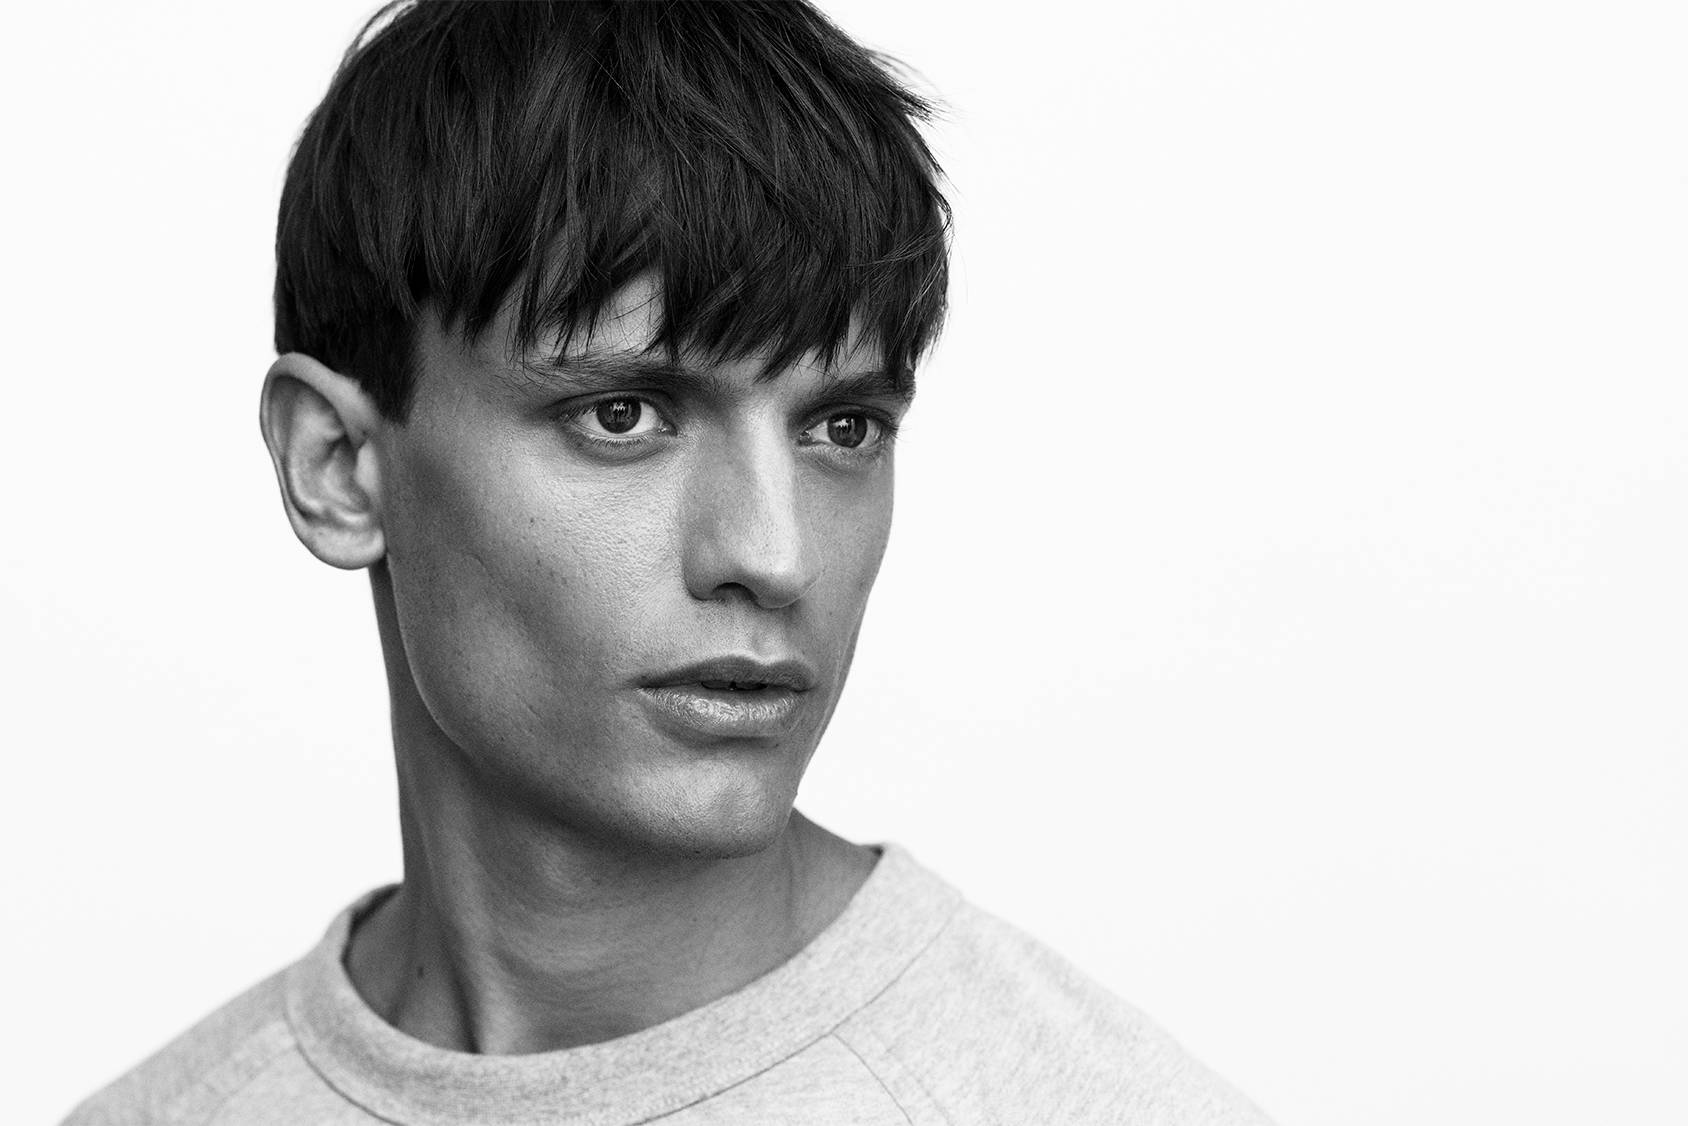 TOP MODEL SECRETS: EDDIE KLINT